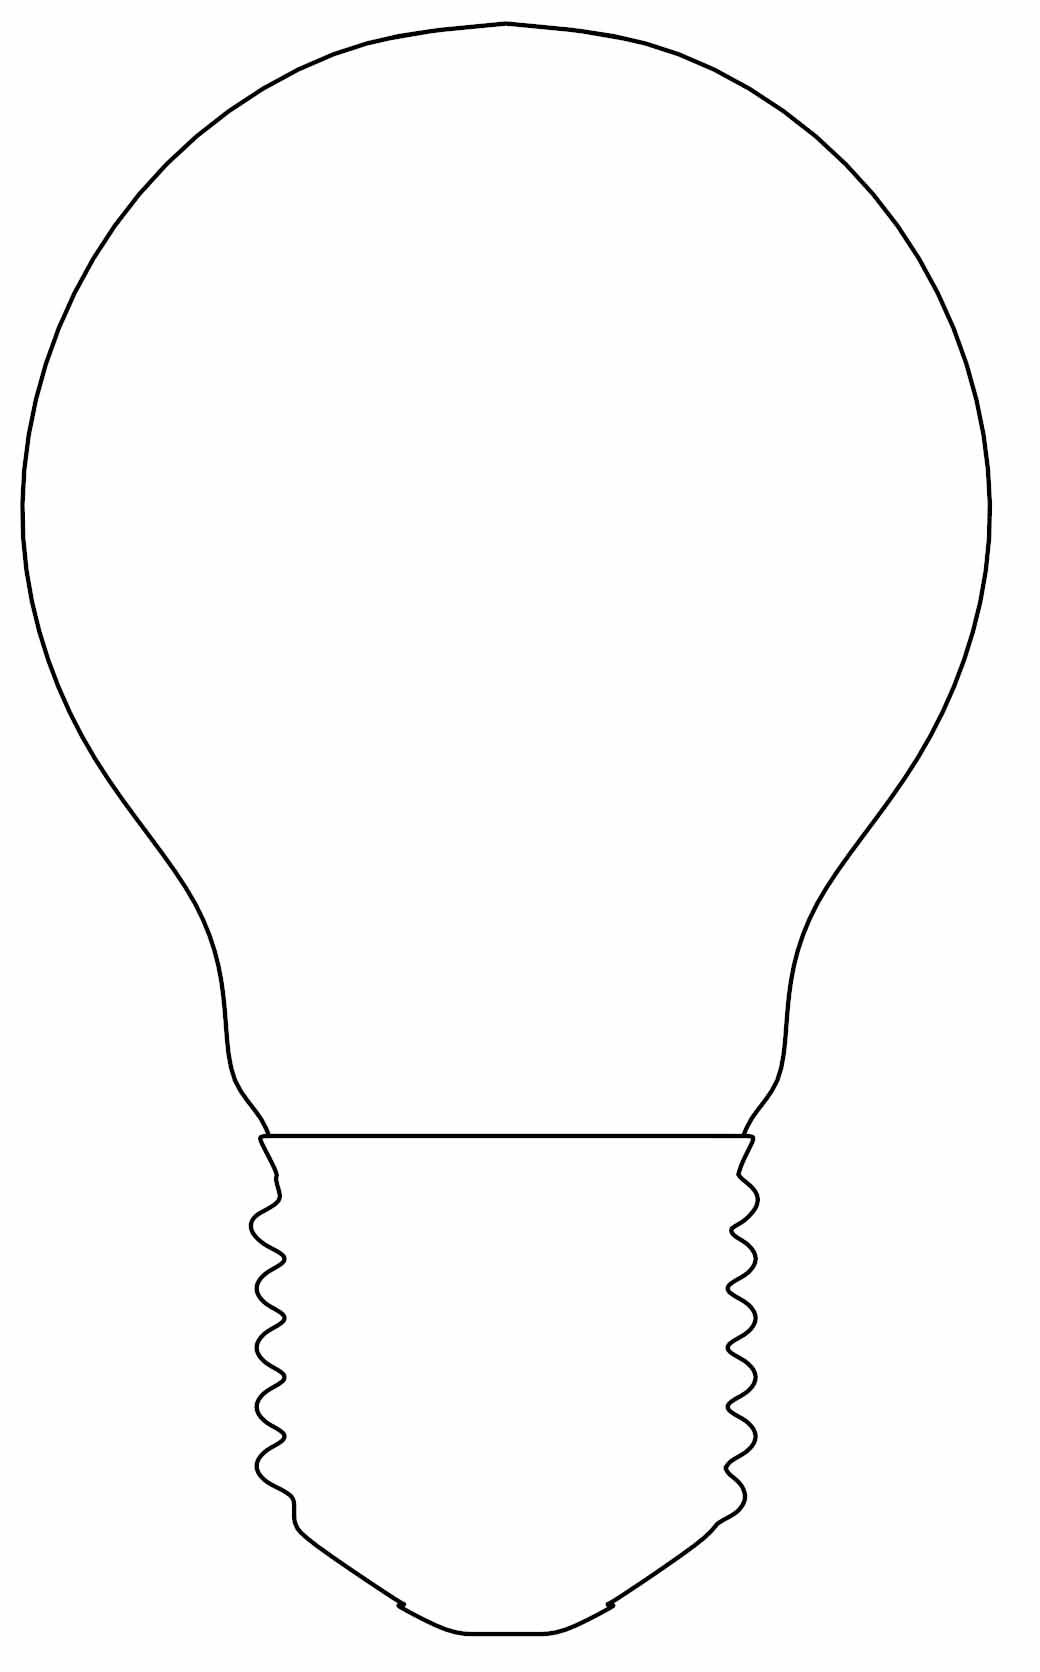 Excellent Image Of Light Bulb Coloring Page Entitlementtrap Com Light Bulb Printable Coloring Pages Butterfly Coloring Page